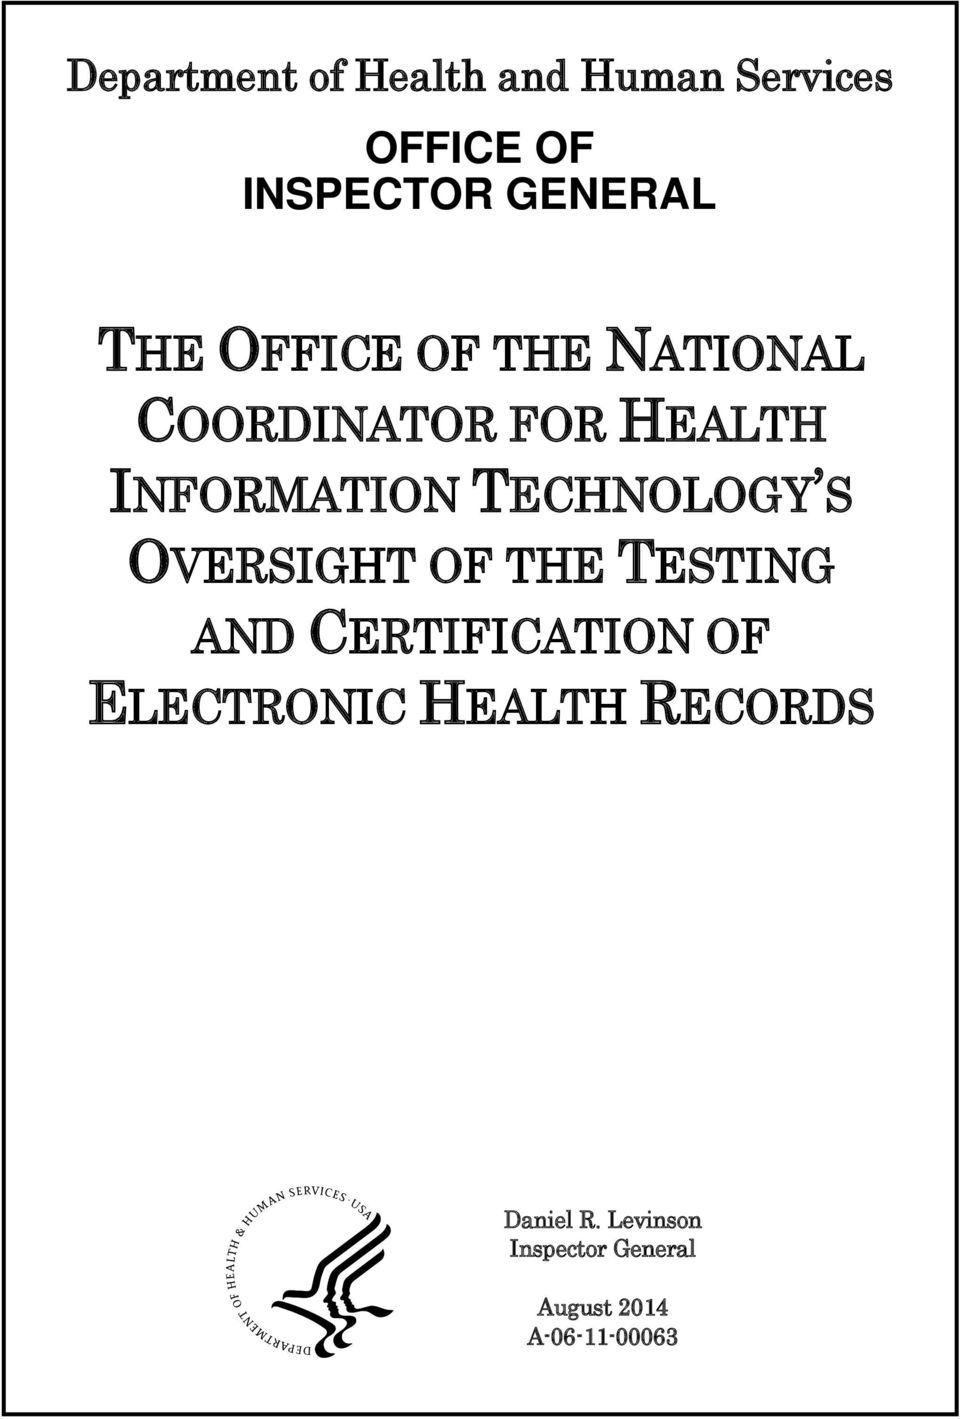 ELECTRONIC HEALTH RECORDS Inquiries about this report may be addressed to the Office of Public